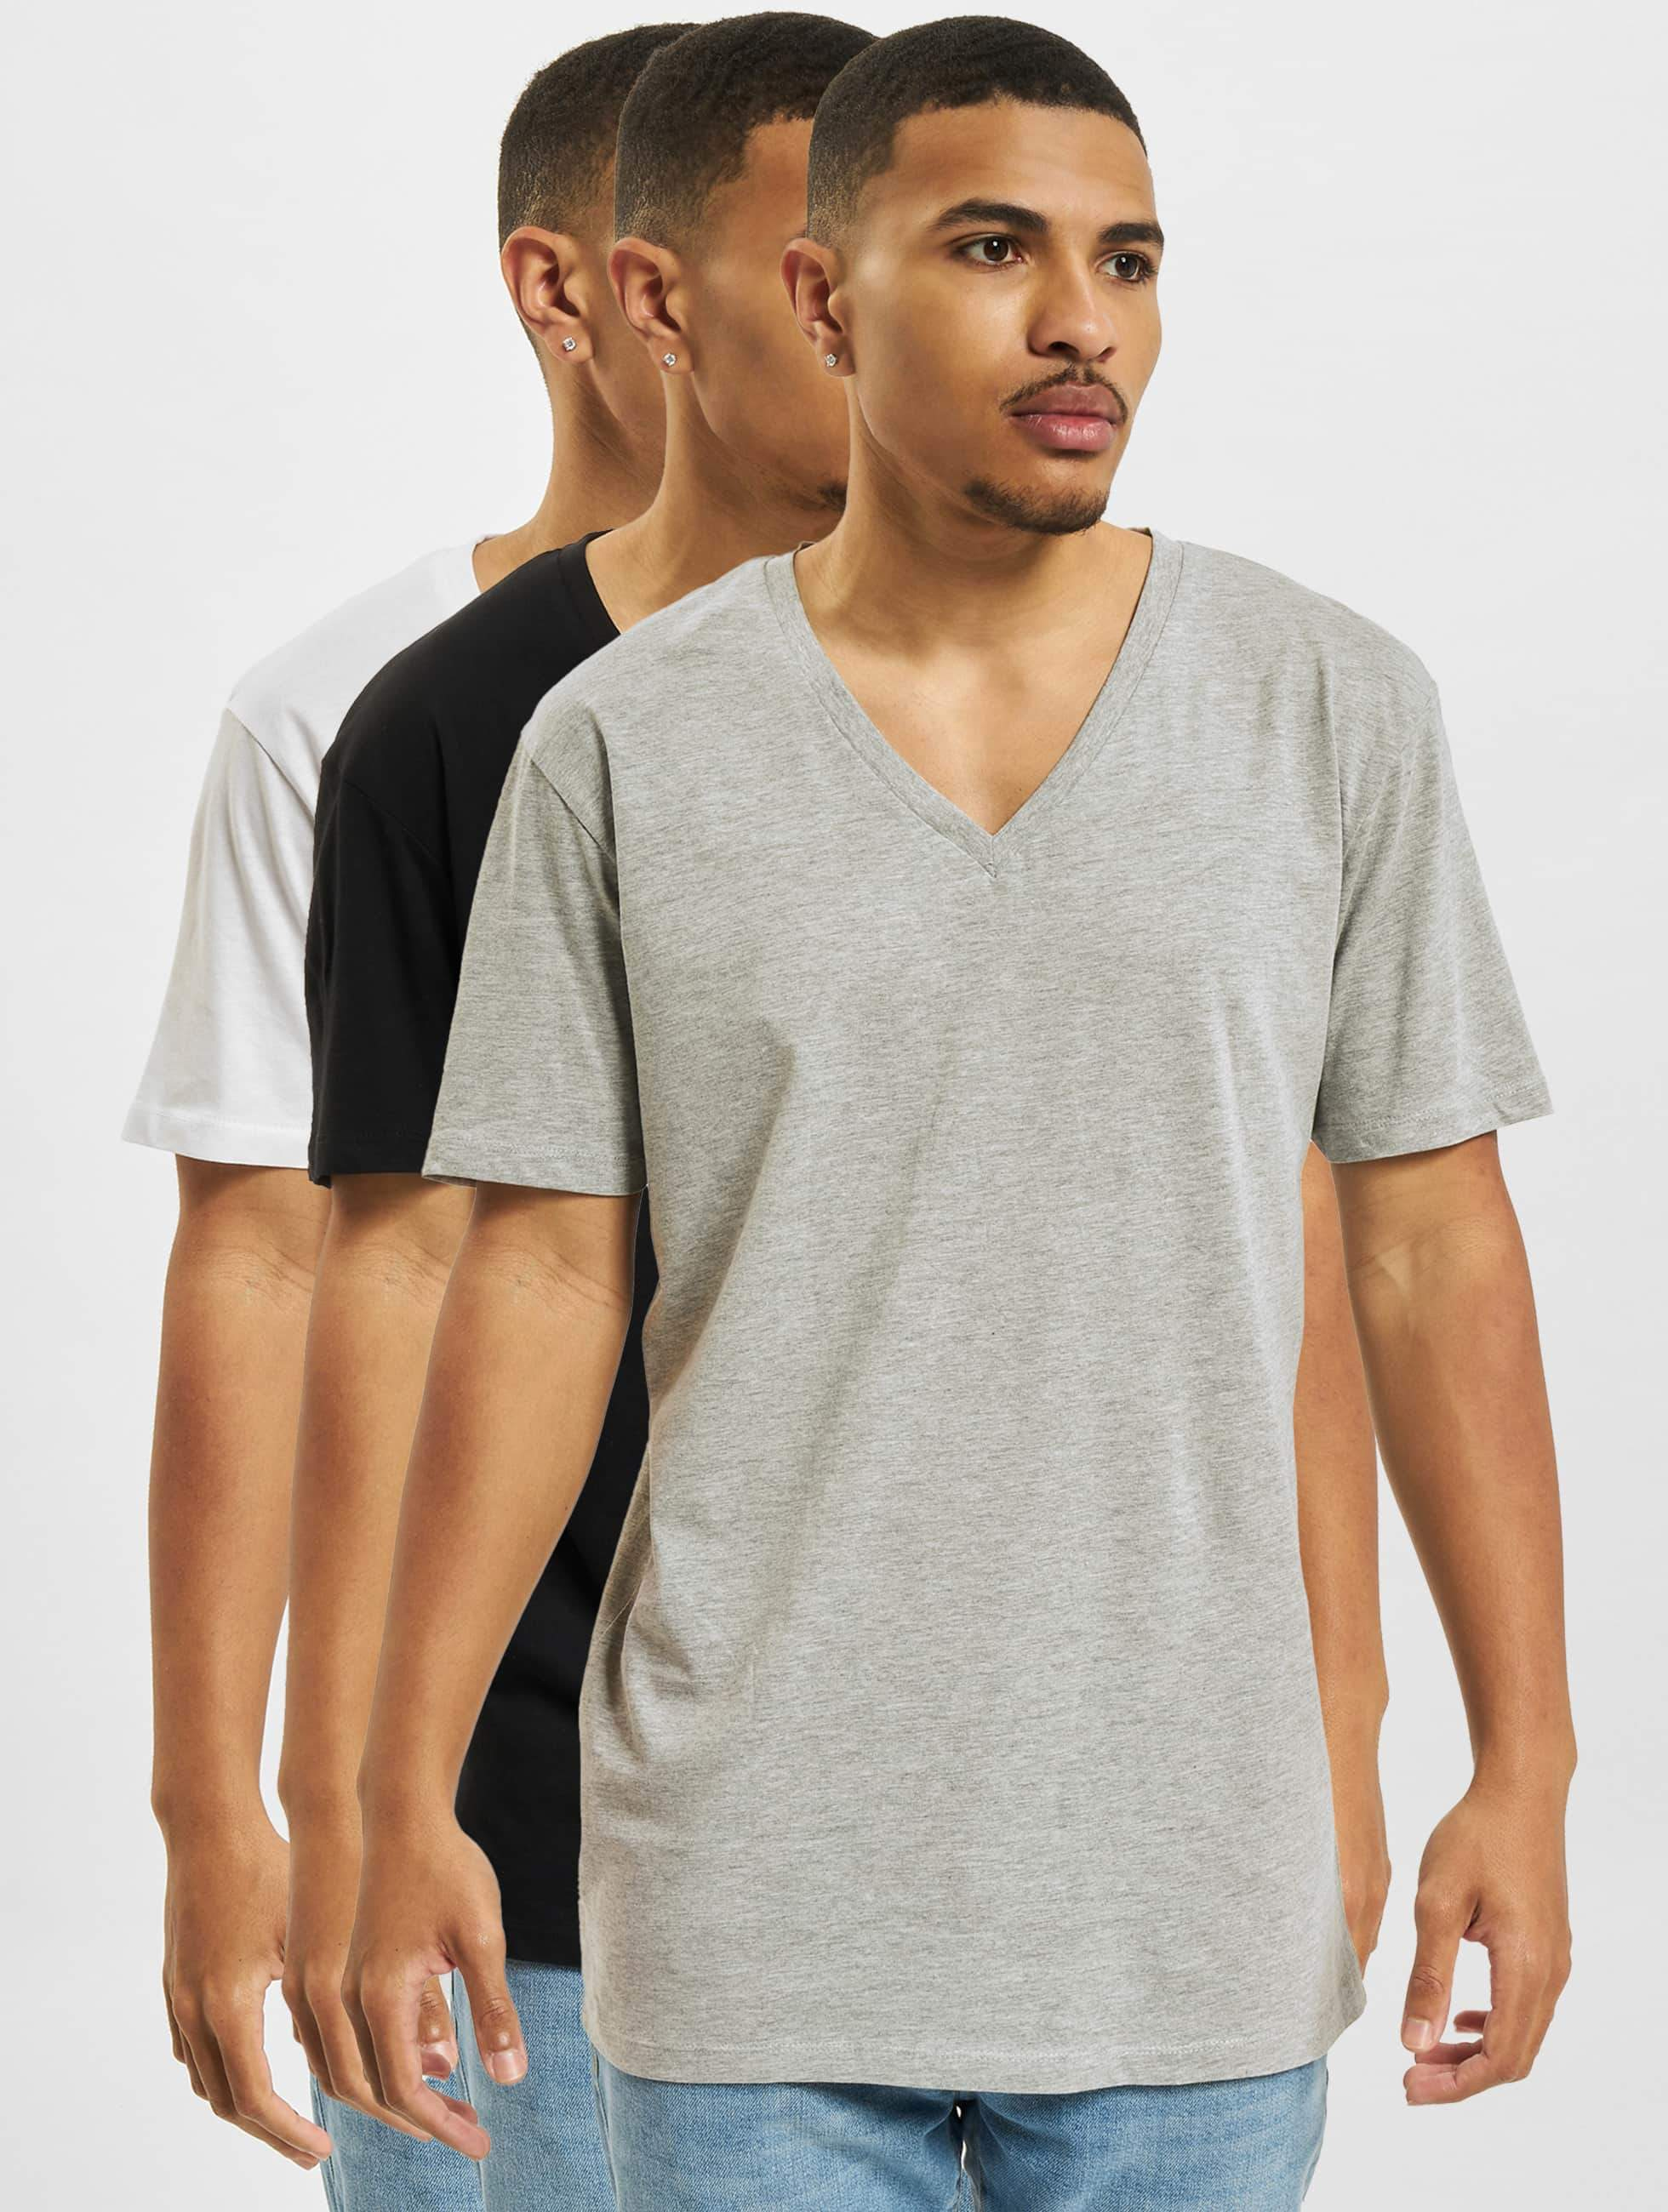 DEF / T-Shirt 3 Pack in black 3XL